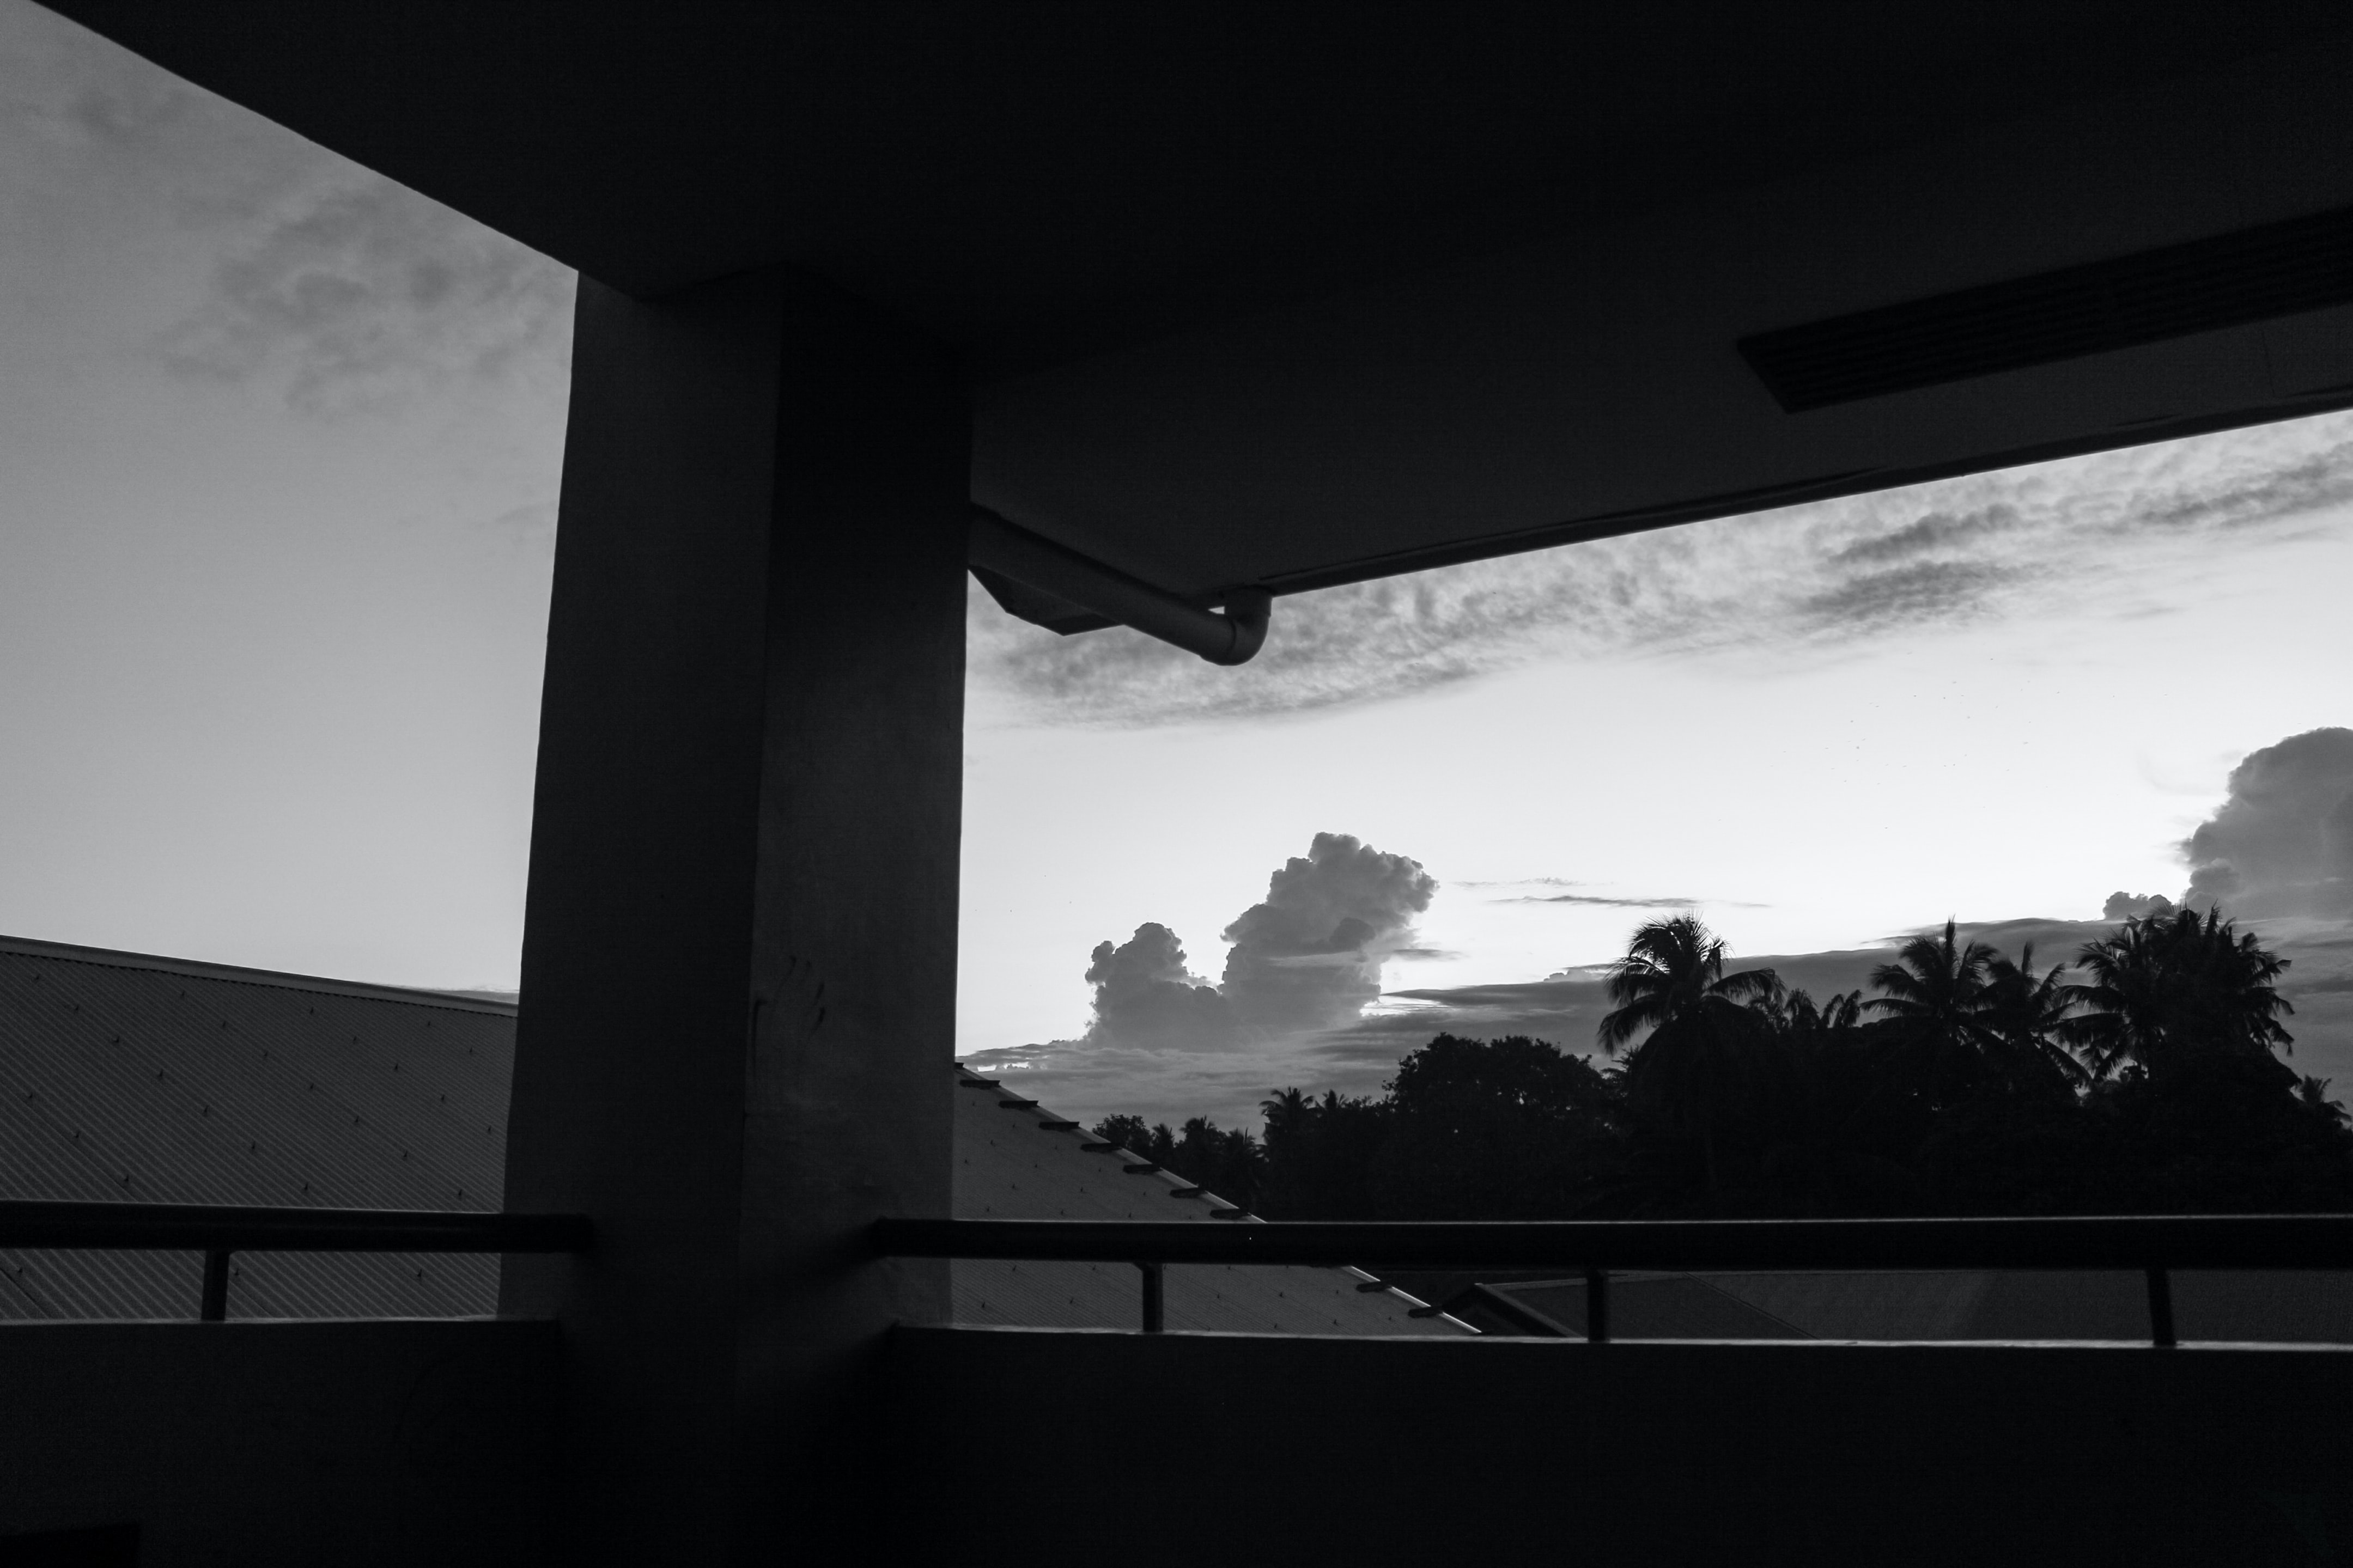 grayscale photography of sky